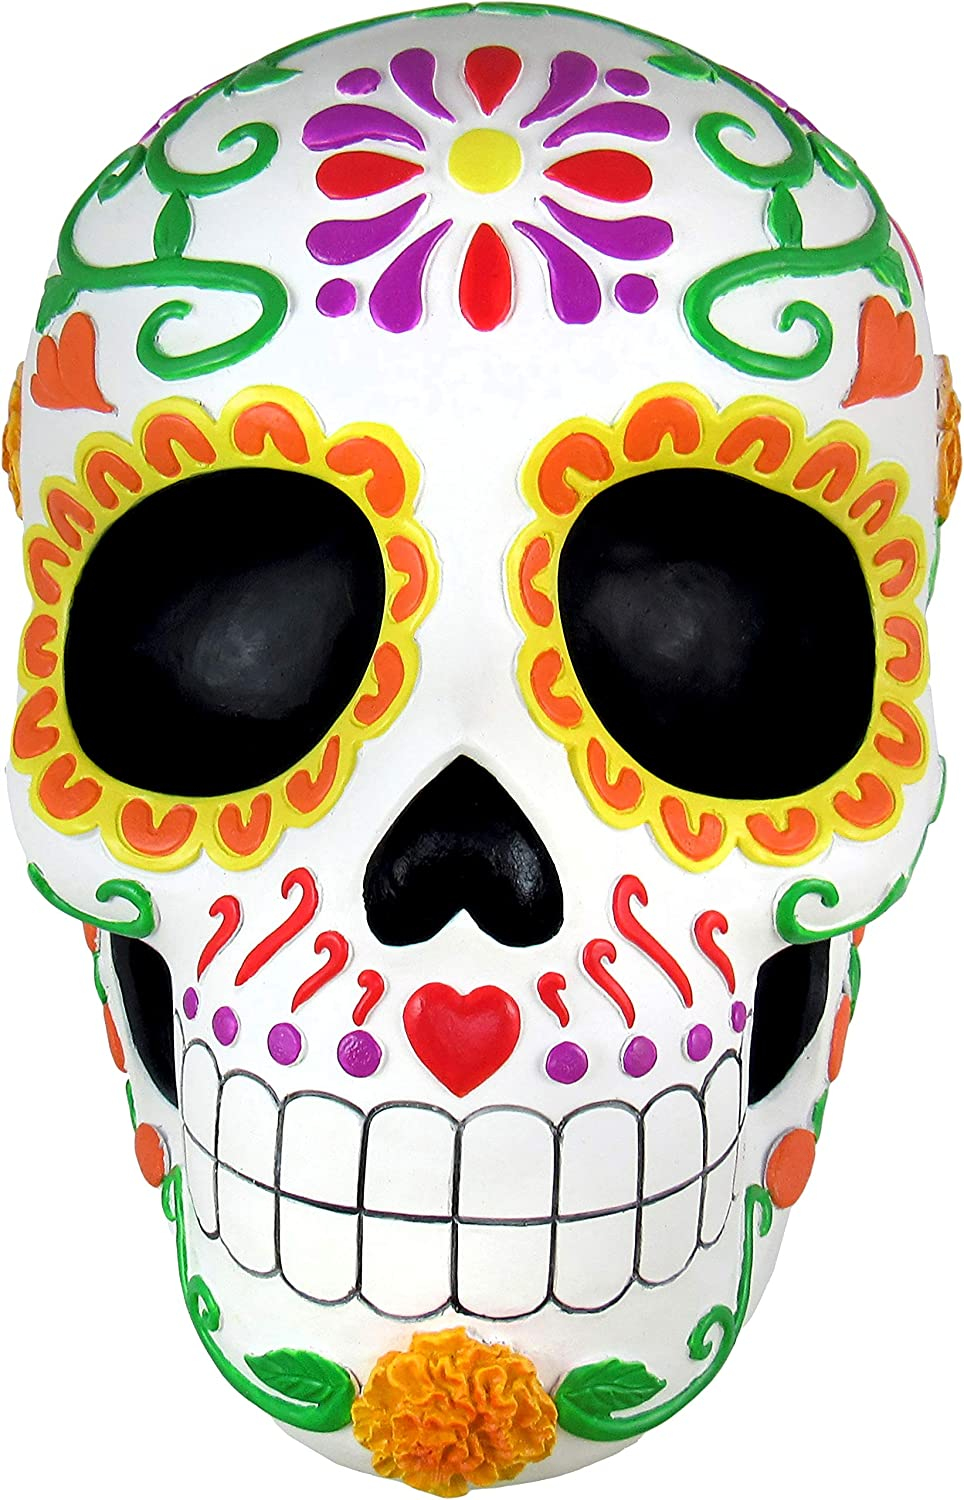 World of Wonders - Fiesta De Muertos Series - Sweet Tribute - Halloween Decorations Sugar Skull Decorative Wall Art Sculpture 3D Calavera Day of the Dead Home Décor Accent, 8.5-inch